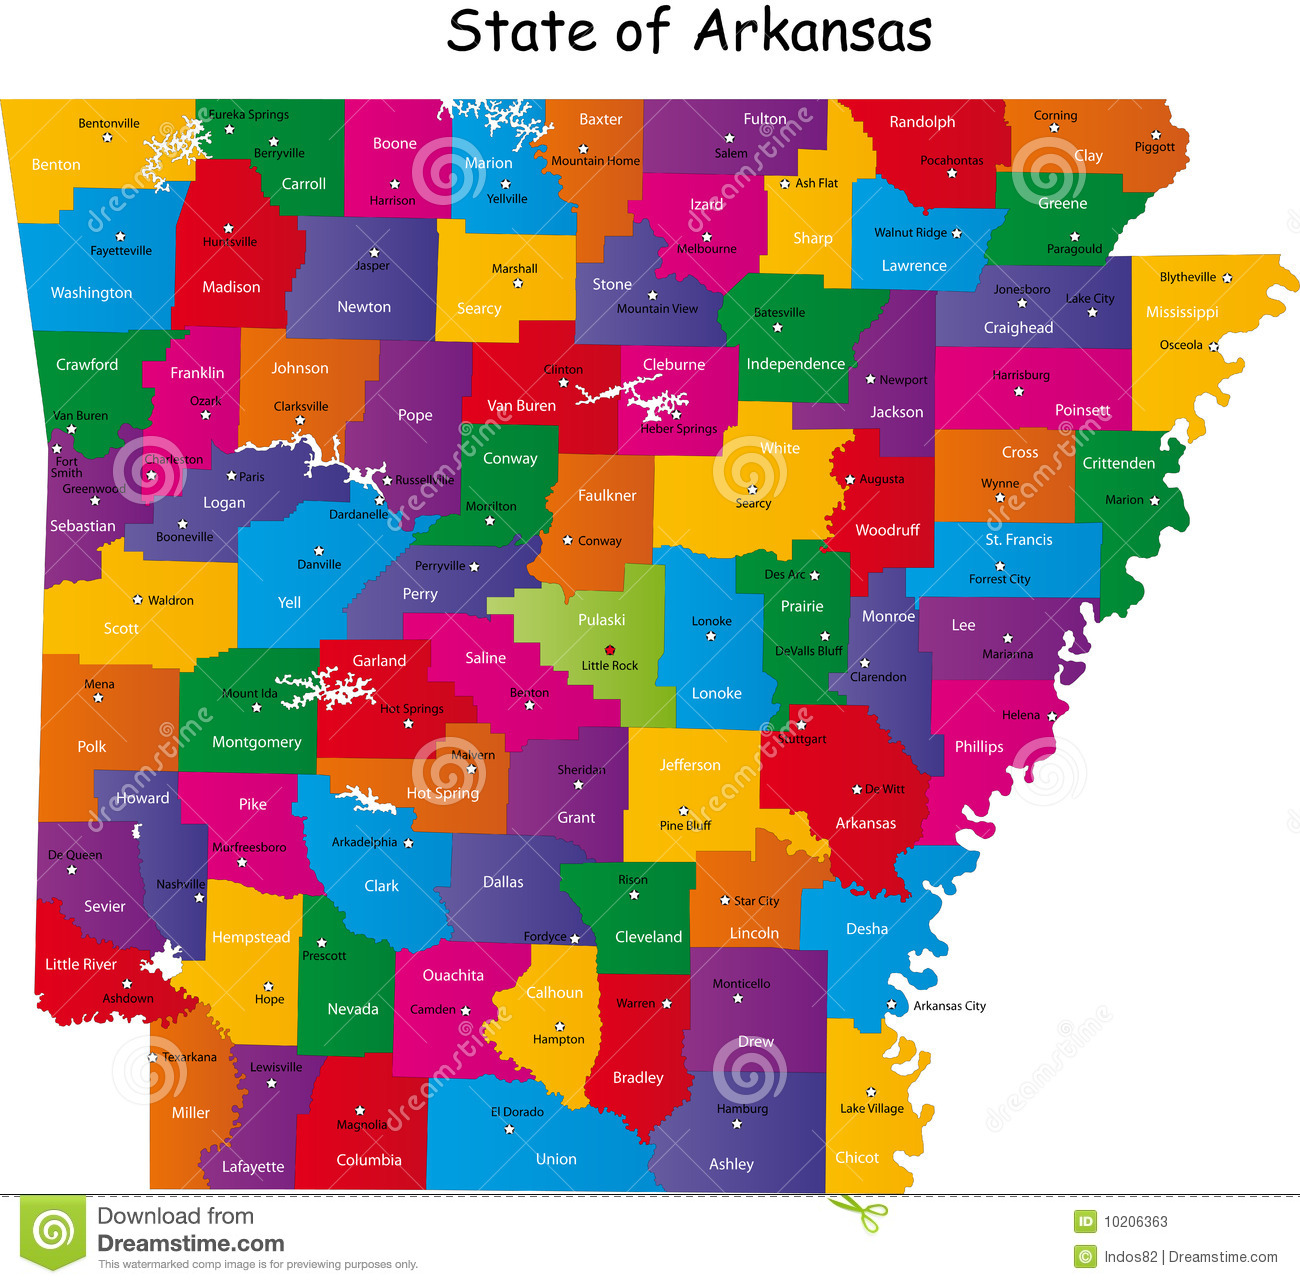 File Map of Arkansas highlighting White County svg   Wikipedia additionally List of cities and towns in Arkansas   Wikipedia moreover  besides Arkansas Counties Map arkansas hot dog cart licensing county state together with Map of Arkansas Counties additionally Miller County Maps as well  also State Counties Maps Download as well  as well  further County Hunter Dot additionally Arkansas Counties Map furthermore  further File Map of Arkansas highlighting Arkansas County svg   Wikipedia besides AR Historical County Lines likewise . on map of arkansas counties